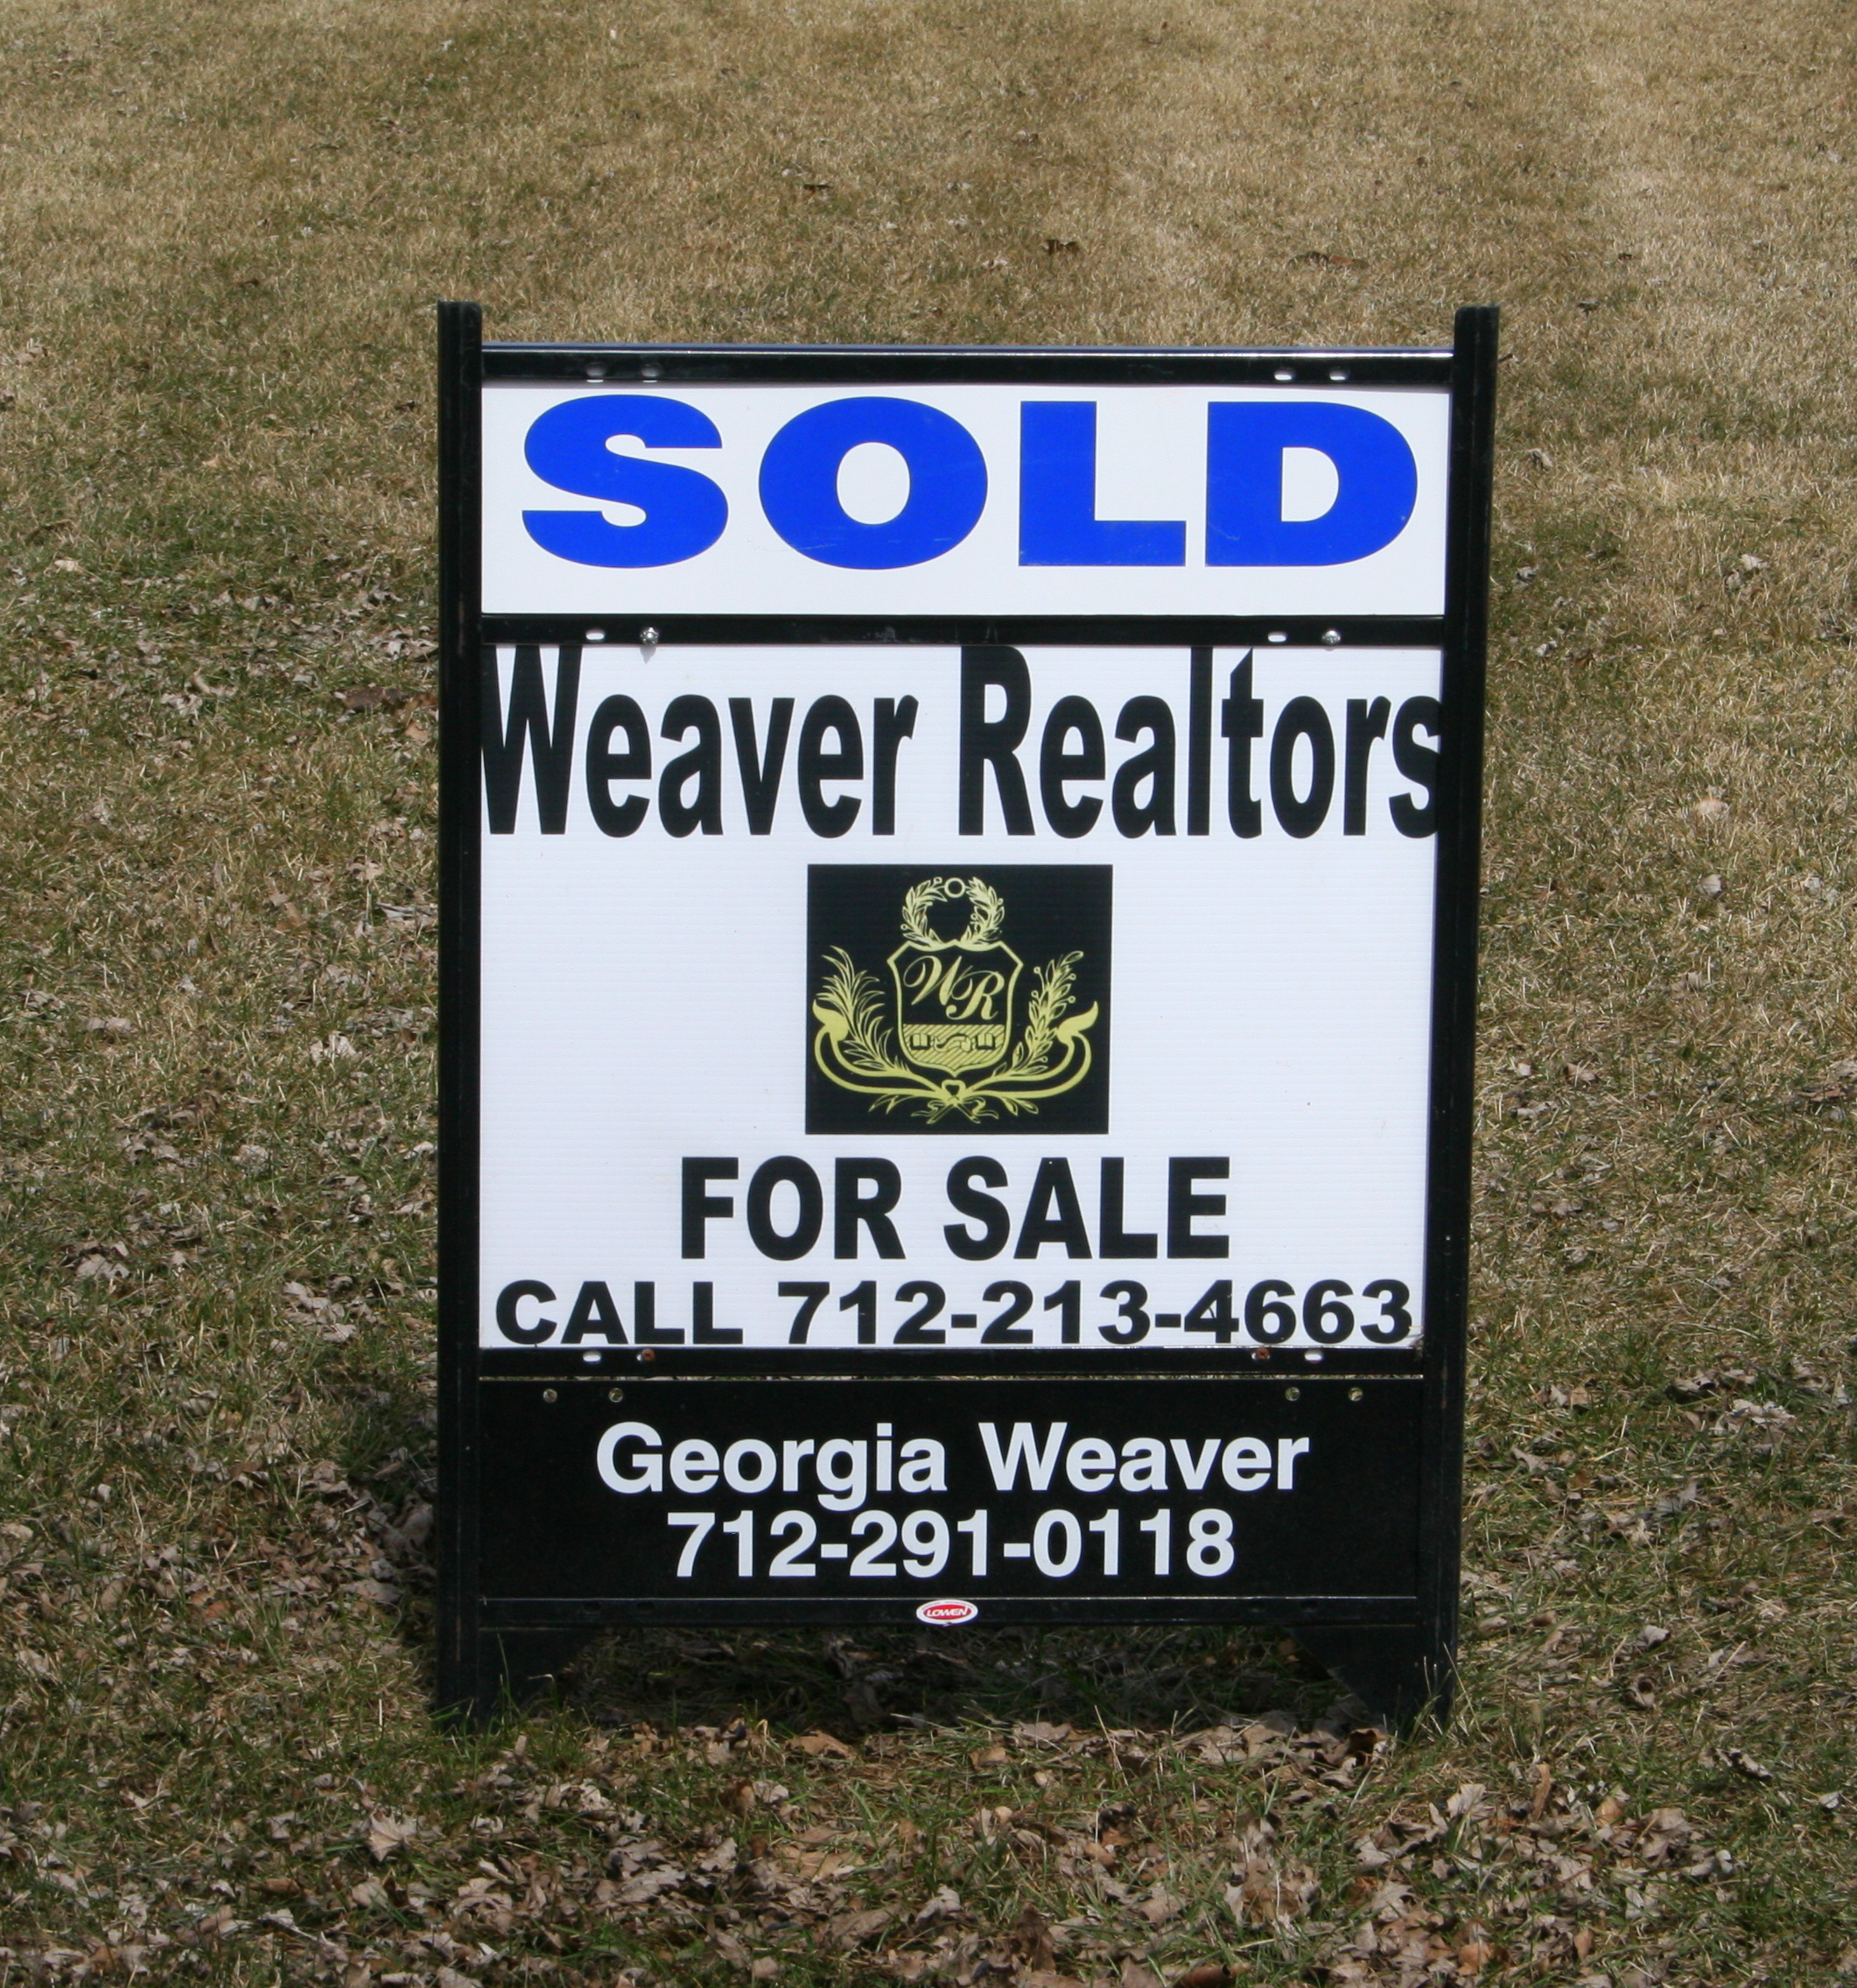 Sold by Weaver Realtors call Today